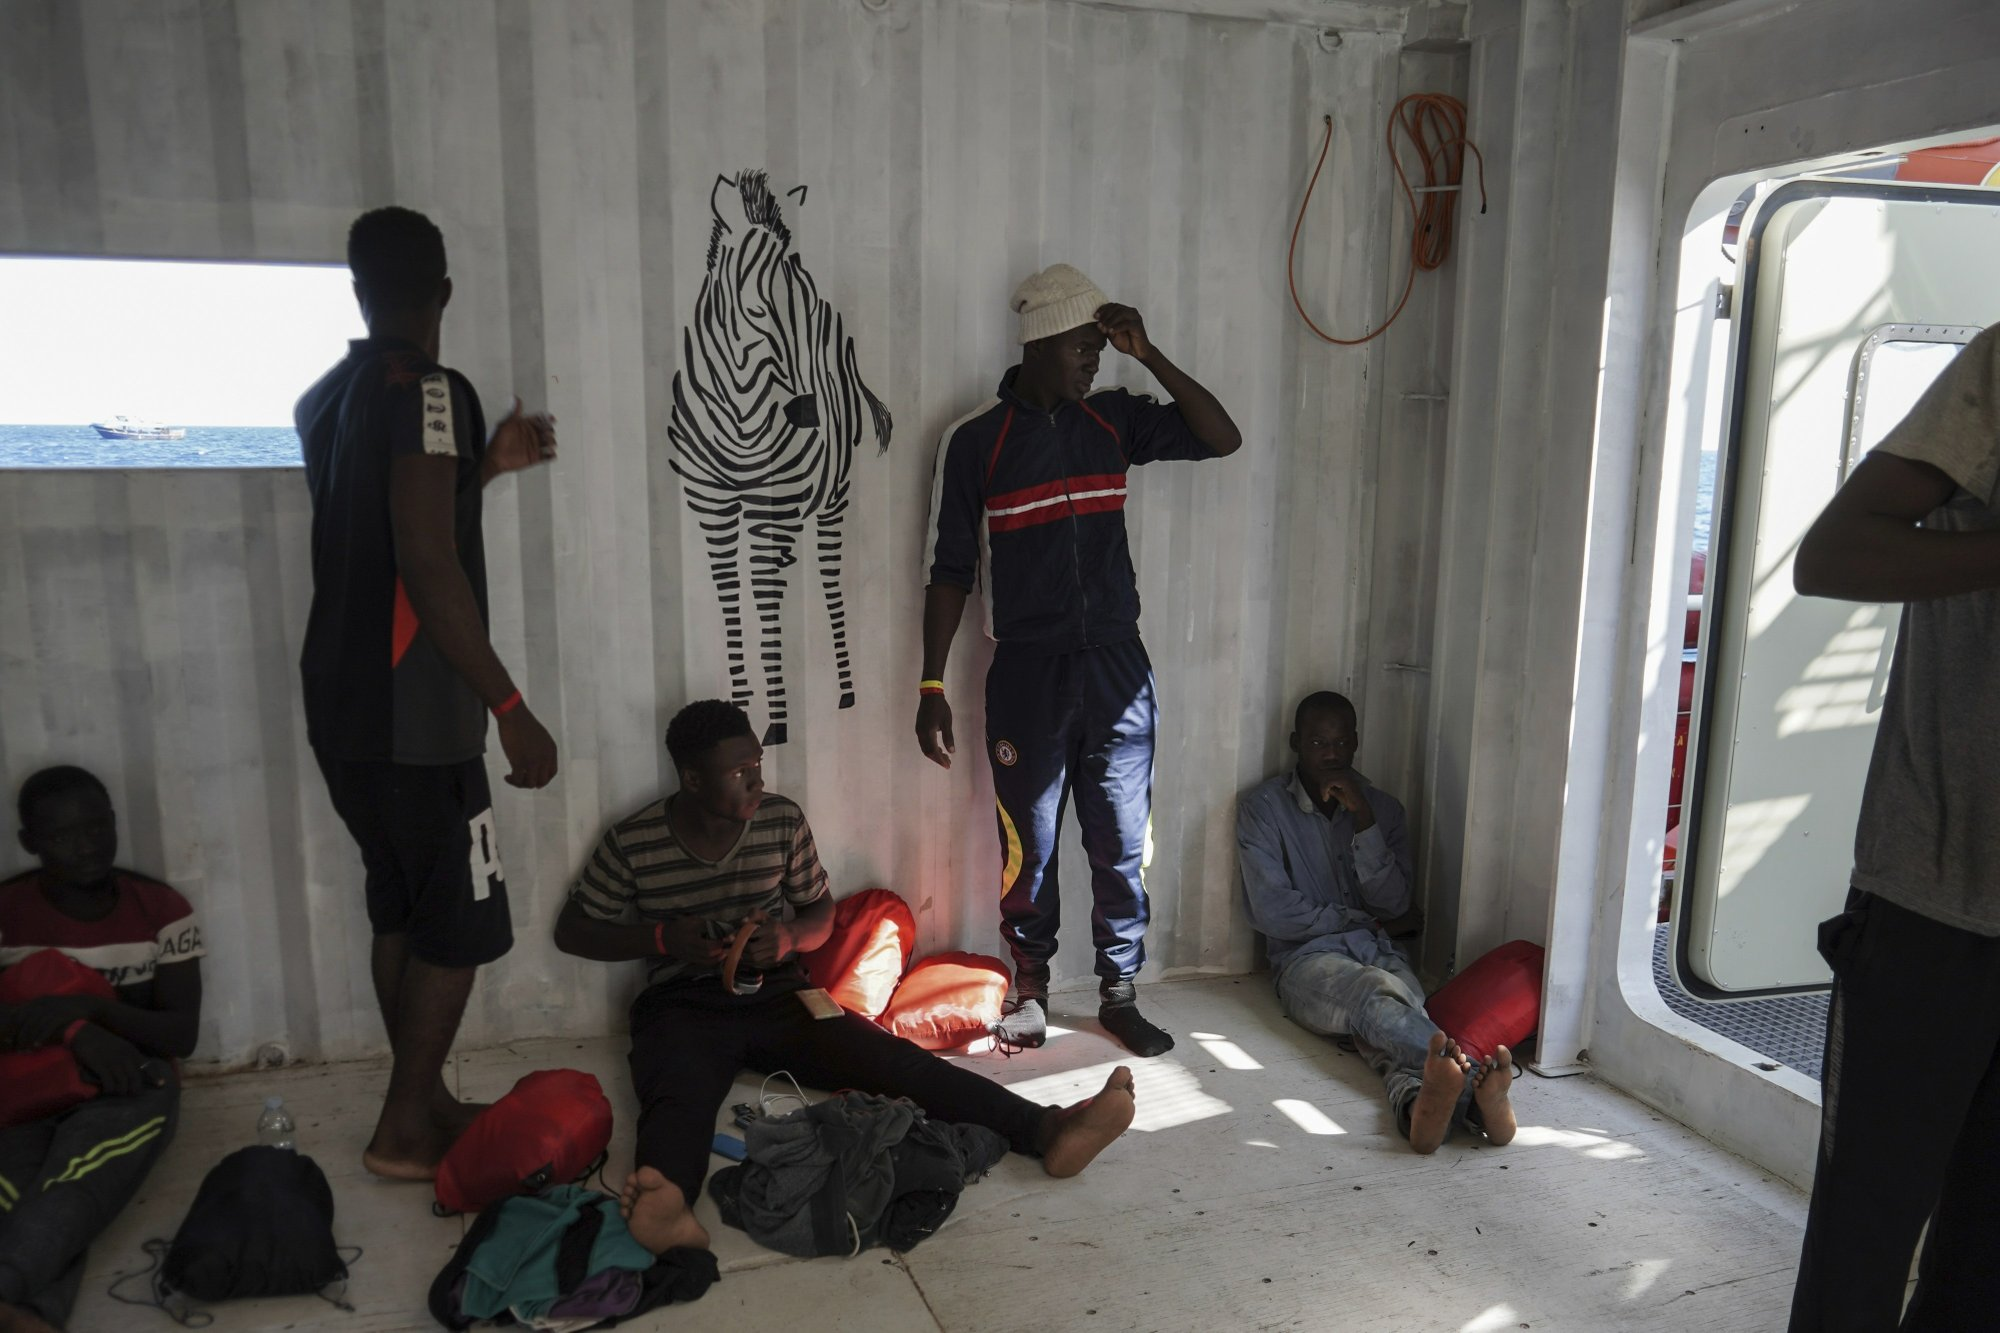 In this Sept. 8, 2019 photo, migrants rescued at sea by the NGOs SOS Mediterranée and Doctors Without Borders rest in the men's shelter aboard the Ocean Viking humanitarian ship as it sails in the Mediterranean Sea. The misery of migrants in Libya has spawned a thriving and lucrative business, in part funded by the EU and enabled by the United Nations, an Associated Press investigation has found. (AP Photo/Renata Brito)